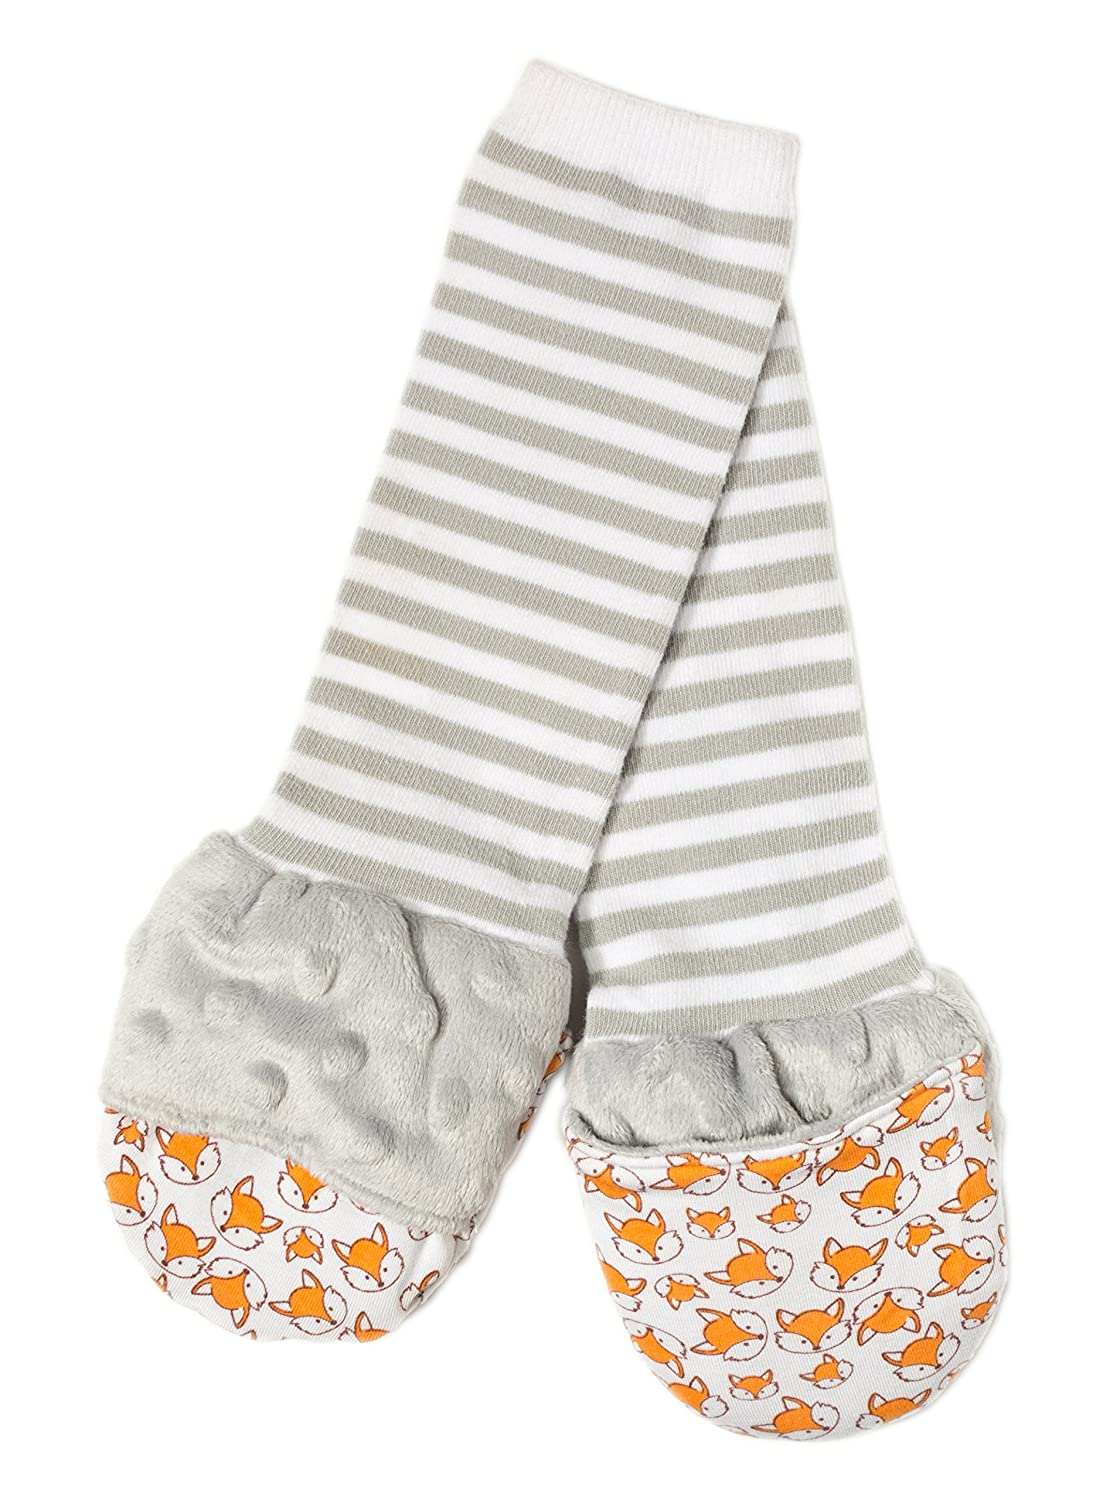 Handsocks Plushy Stay On Strap-Free No-Scratch & Warmth Baby & Kid Mittens- Small (0-6 Months), Sweet Caroline (Stars))